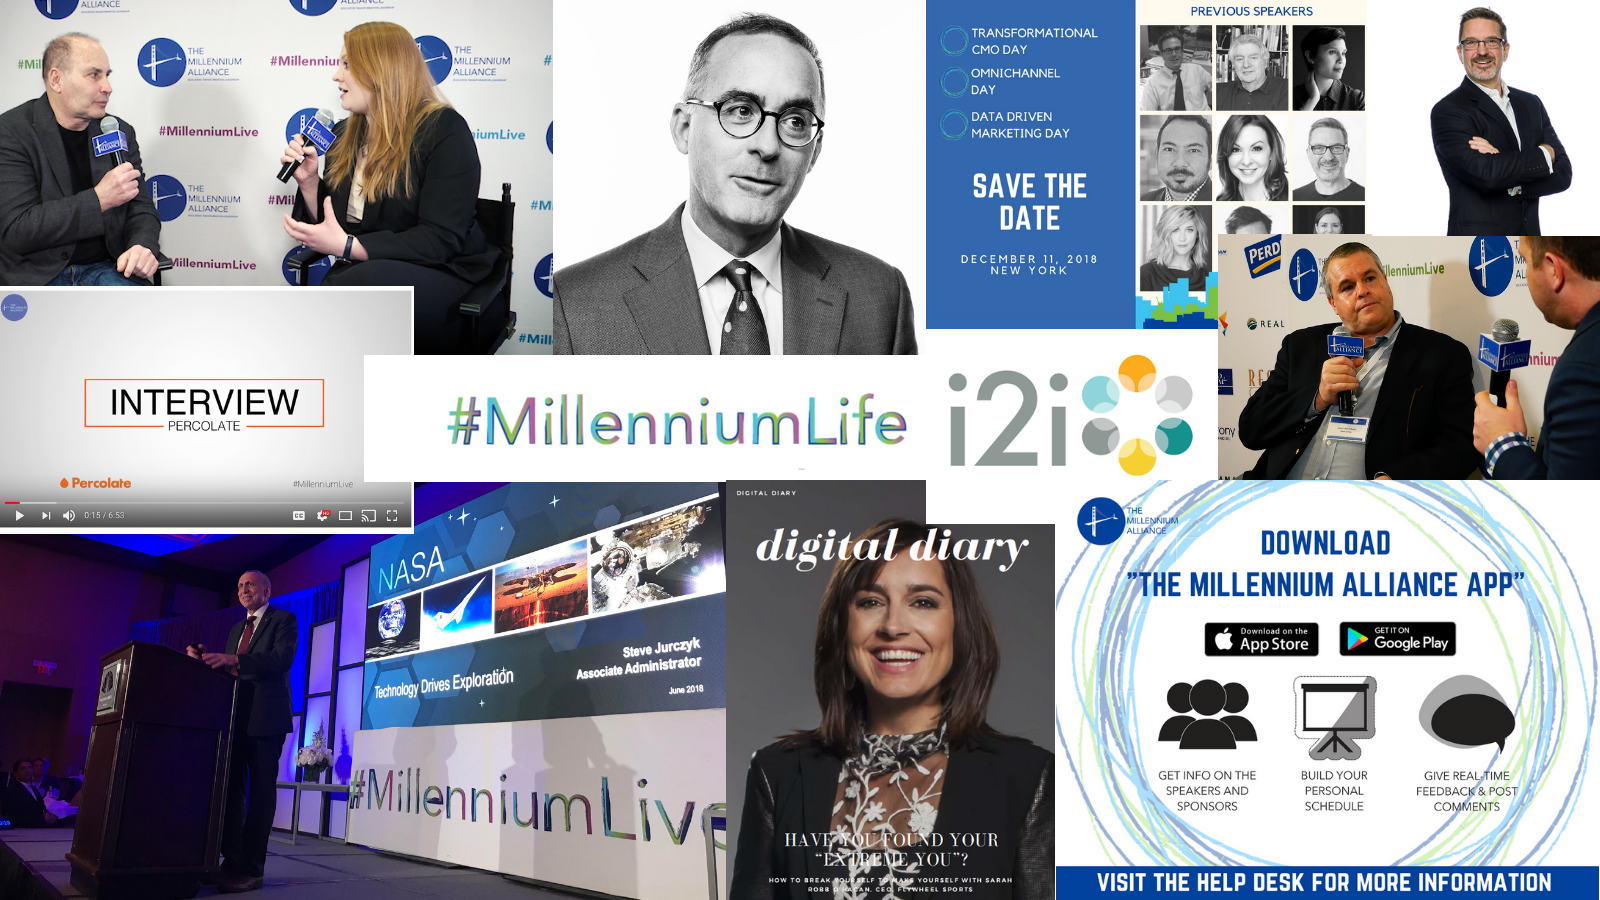 The Millenium Alliance Collage Presentation